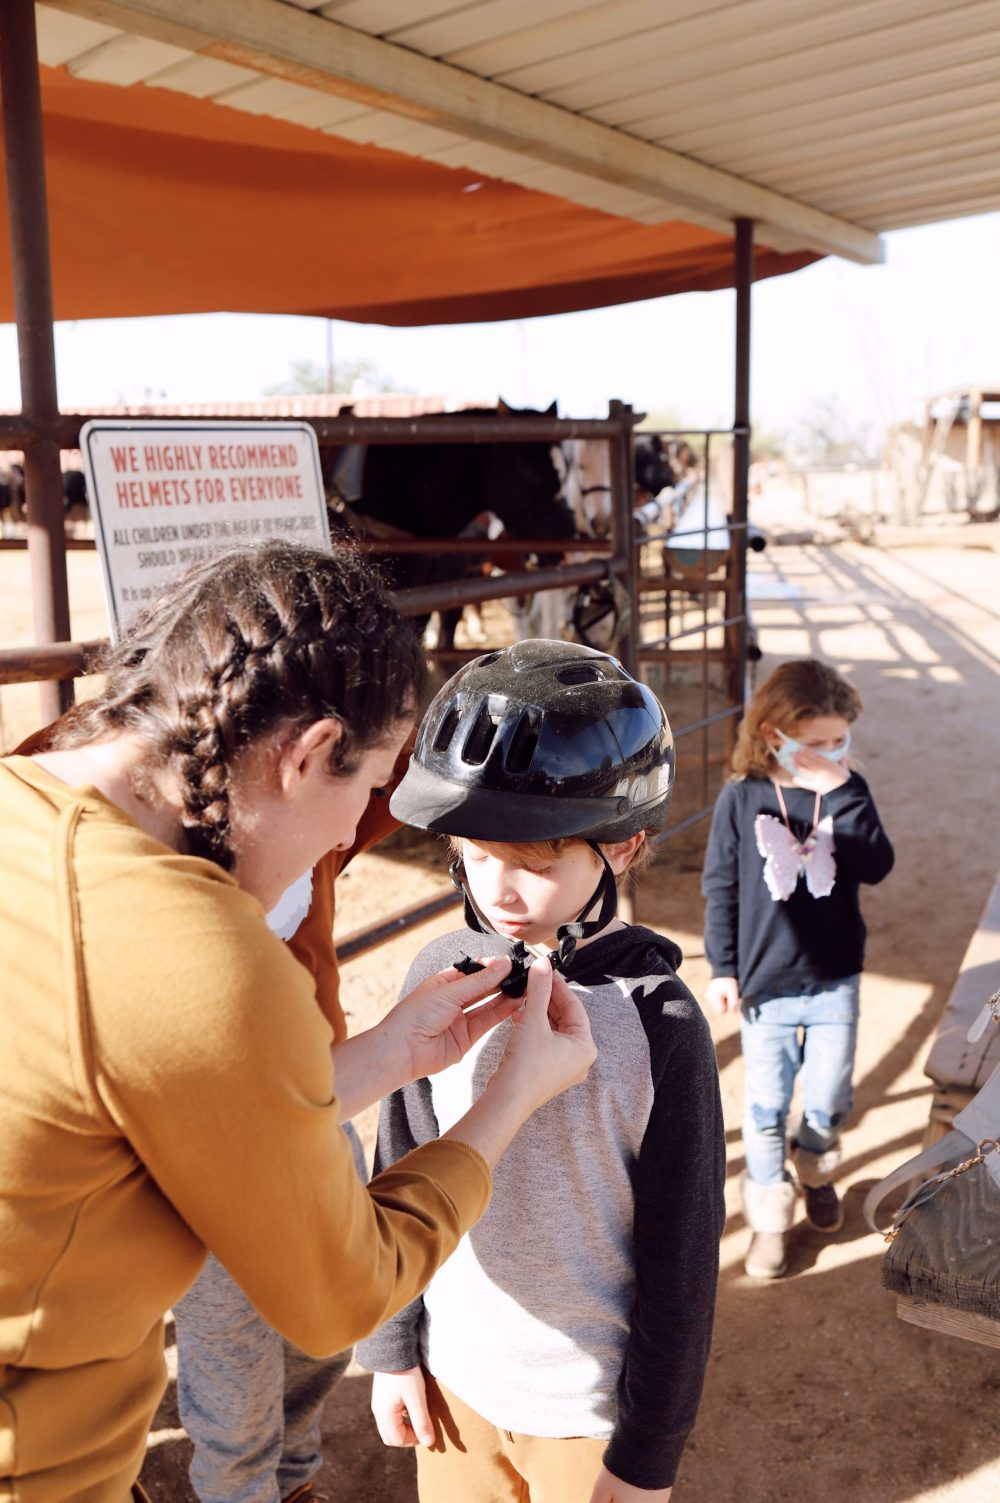 One of the Best Secret Winter Sun Destinations, Scottsdale Arizona. Horseback riding in the desert and family-friendly activities at MacDonald's Ranch. |Guide by popular Florida travel blog, Fresh Mommy Blog: image of a mom buckling a black helmet on her son's head.